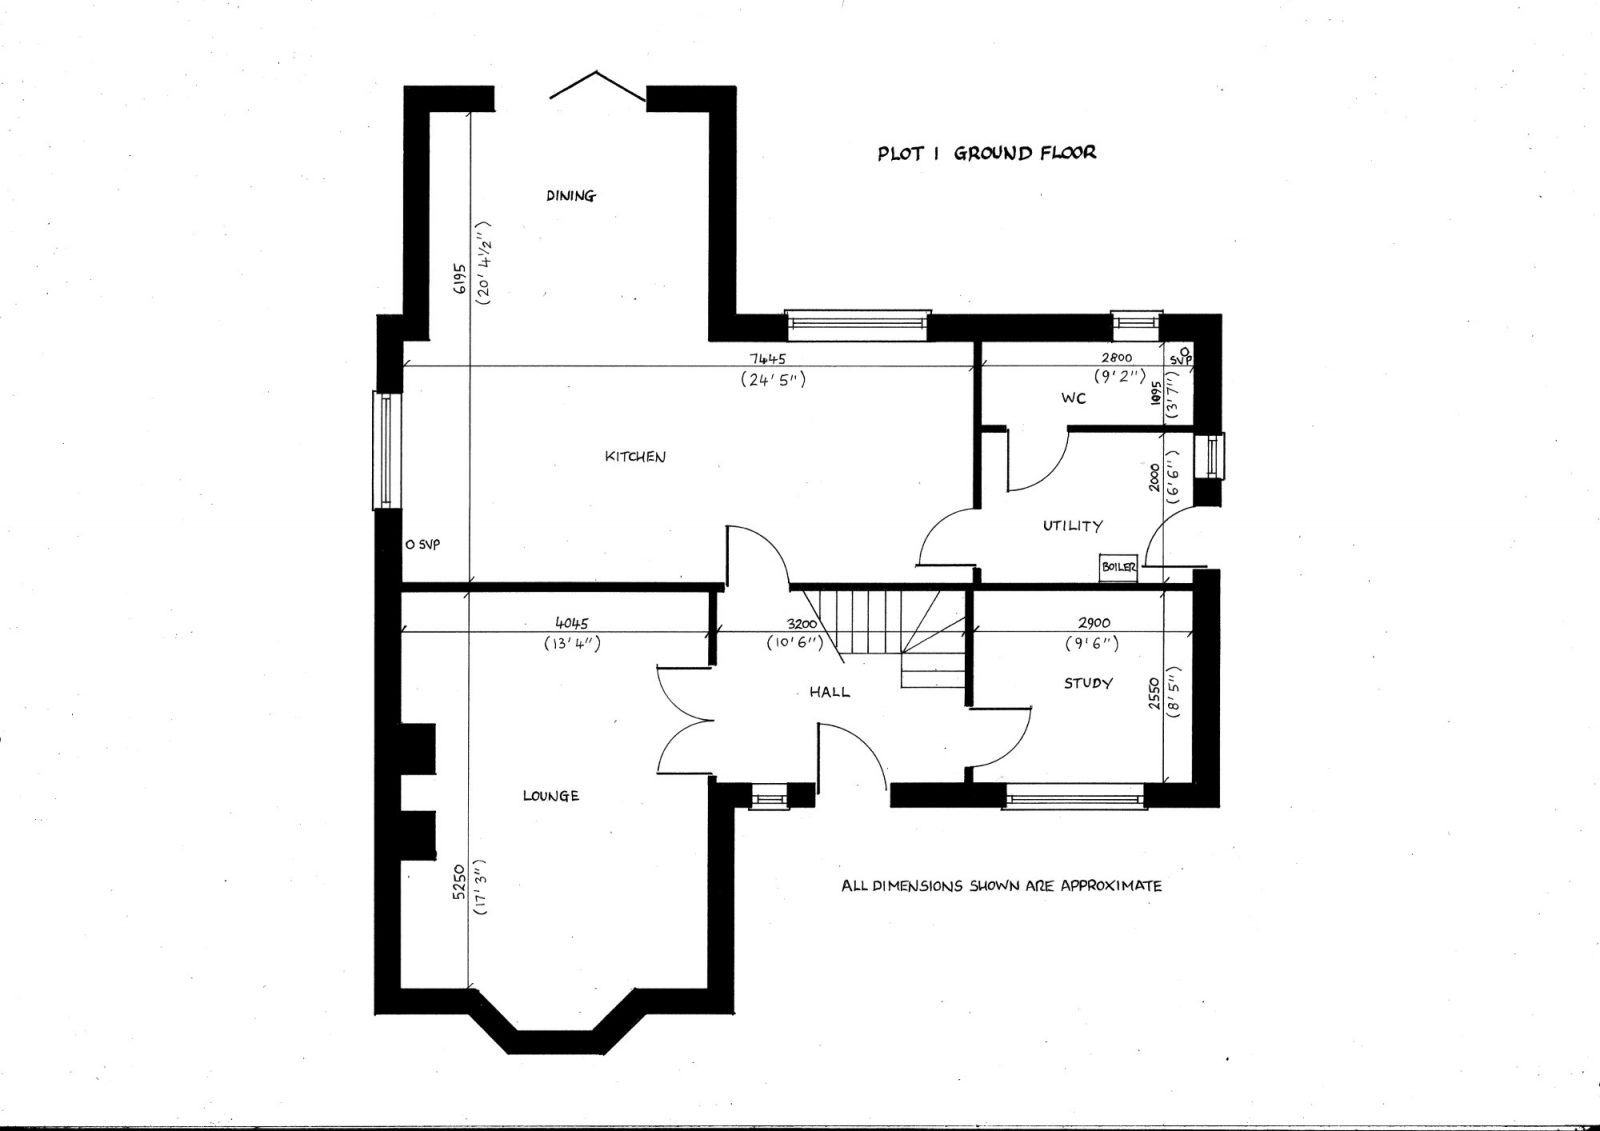 plot-1-ground-floor-plan-reduced